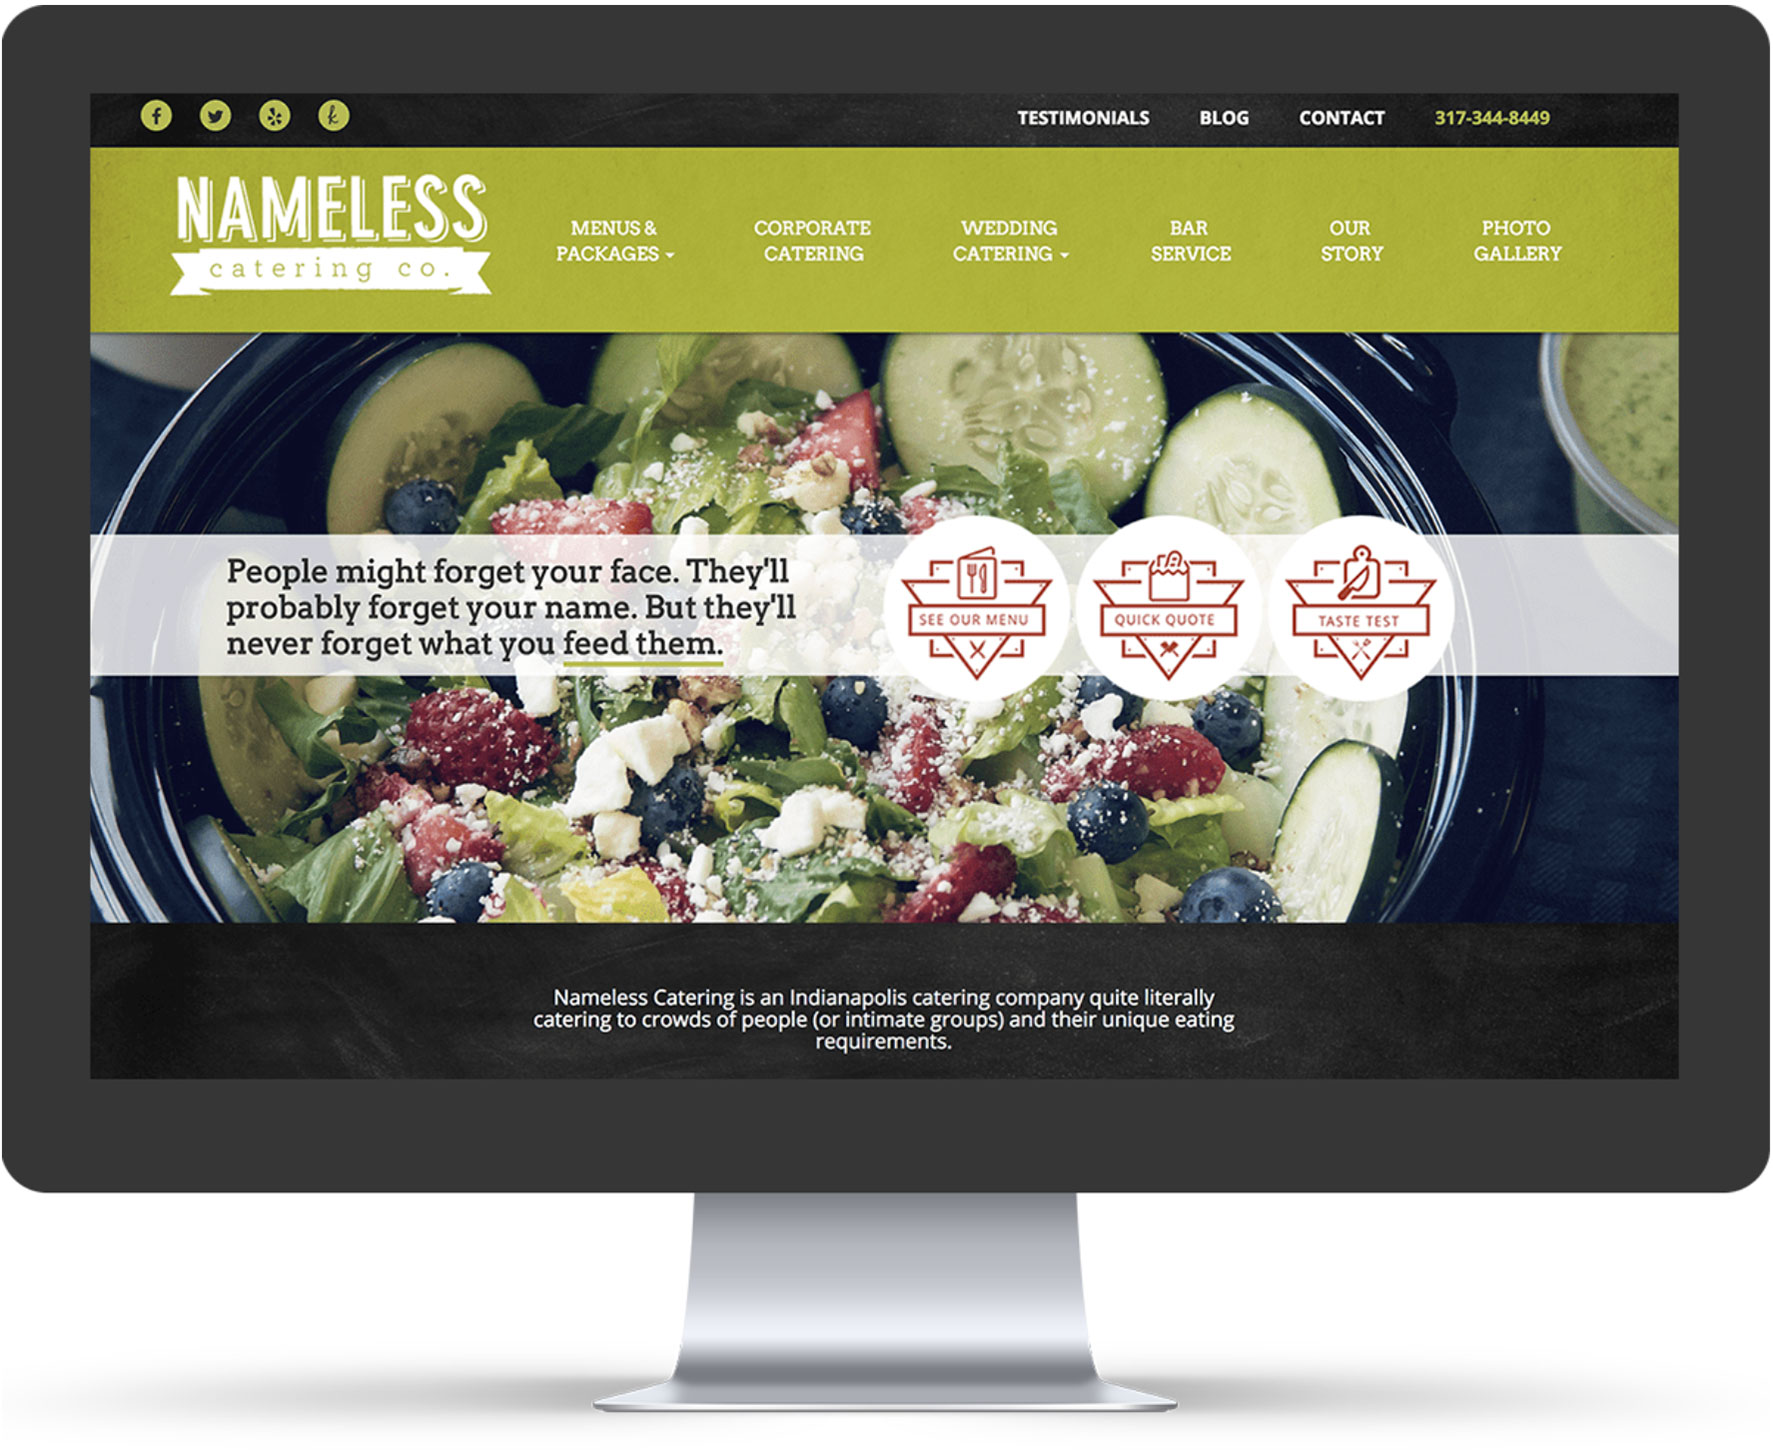 Nameless Company Website Mockup on iMac